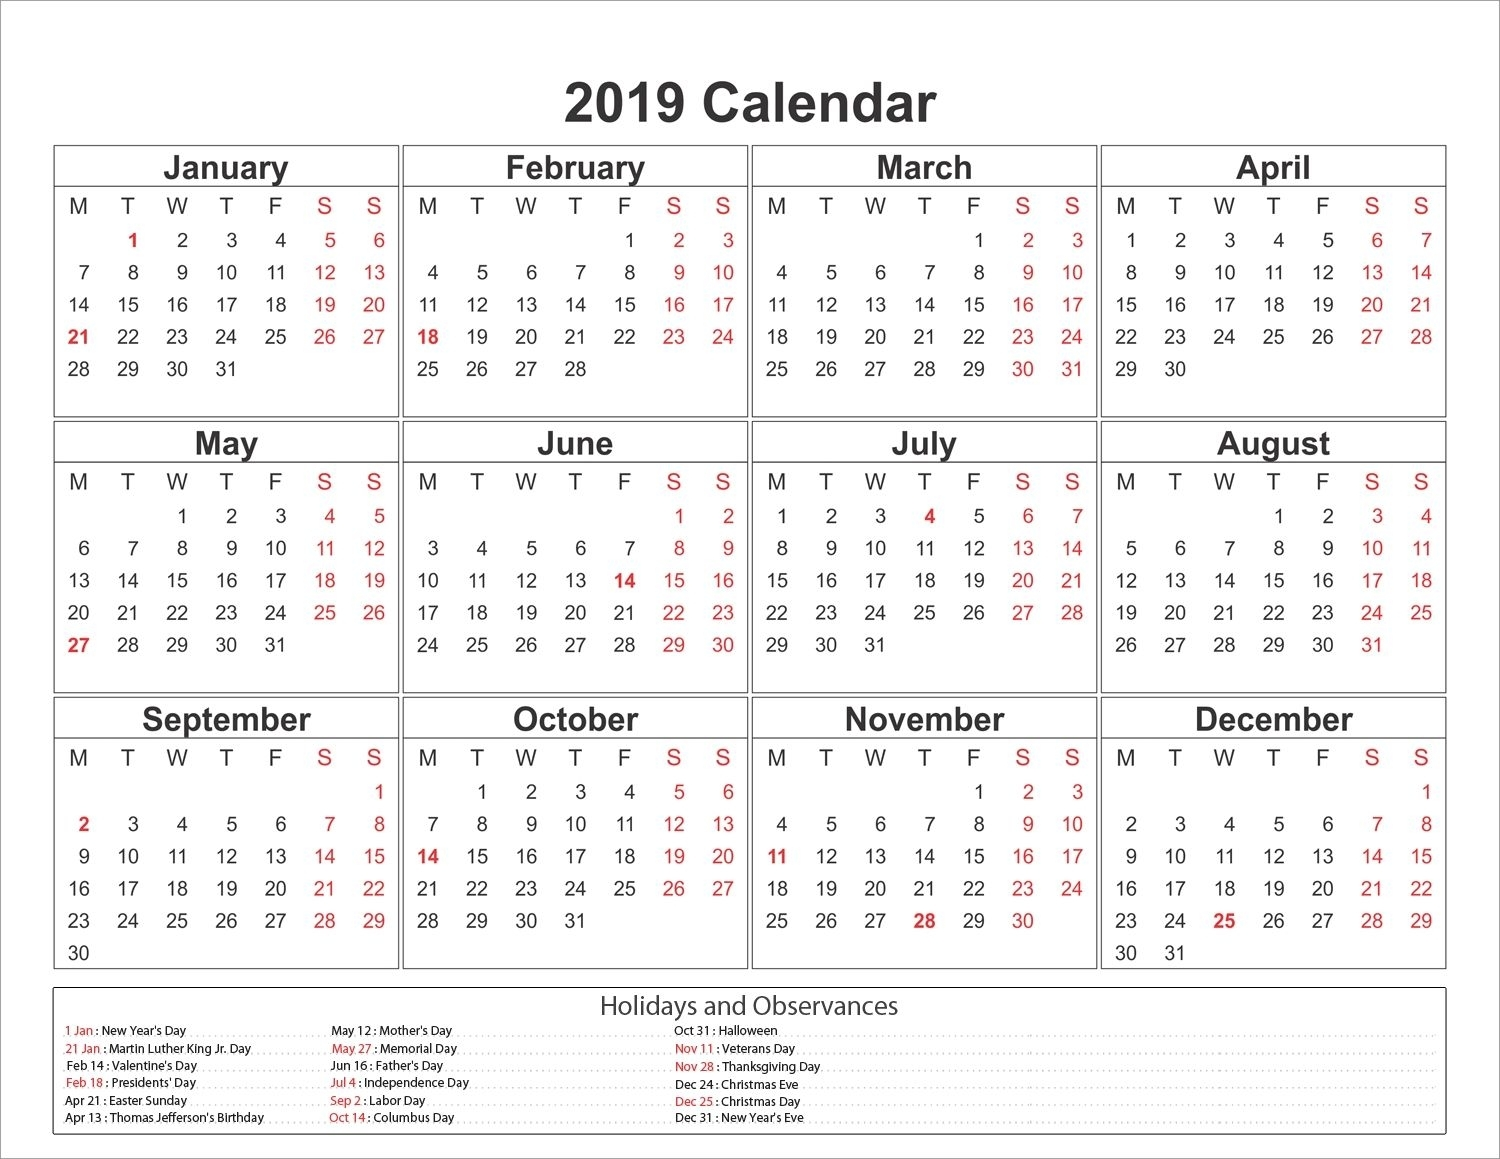 Printable Yearly Printable 2019 Calendar Pdf Template for Pdf Blank Calendar Without Months